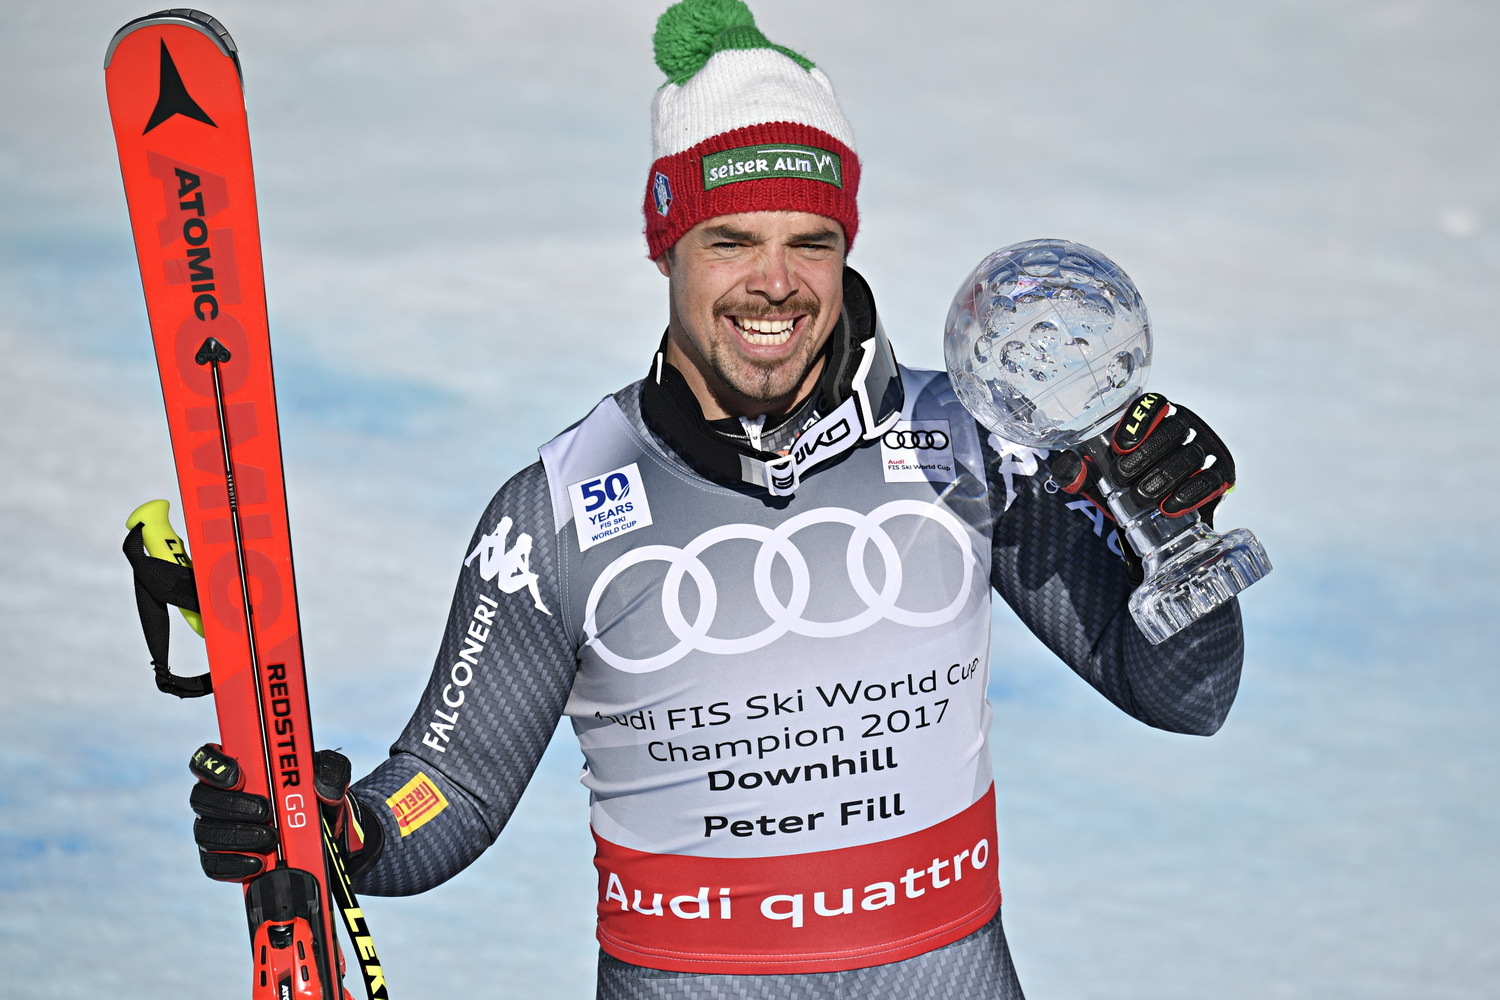 ASPEN, USA - MARCH 15: Peter Fill of Italy wins the globe in the overall standings during the Audi FIS Alpine Ski World Cup Finals Women's and Men's Downhill on March 15, 2017 in Aspen, USA (Photo by Francis Bompard/Agence Zoom)